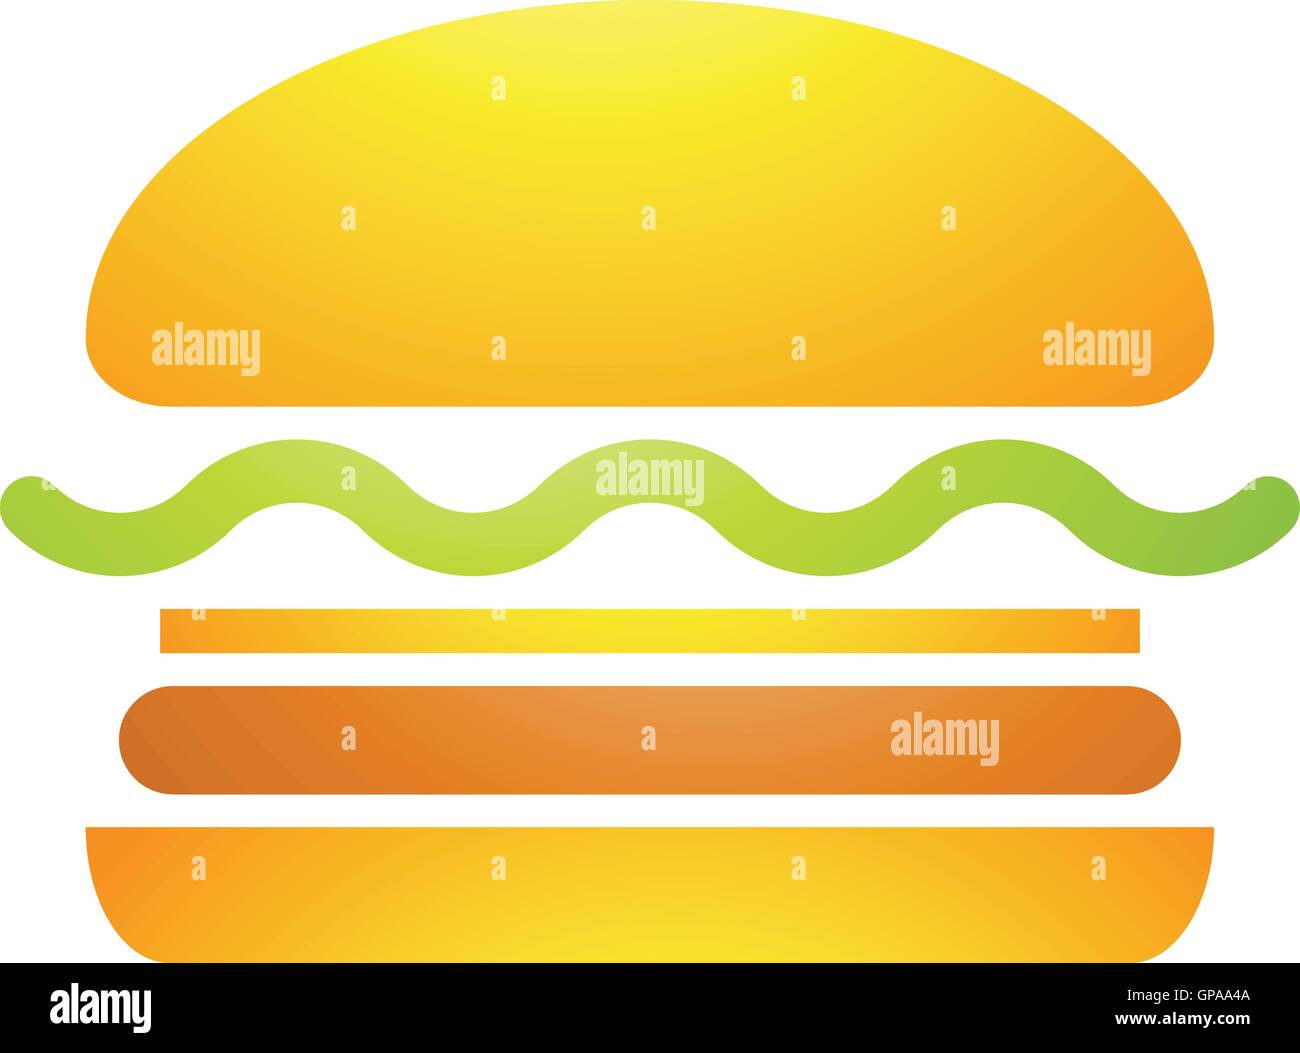 Illustration of Fast Food Burger Icon isolated on a white background - Stock Vector